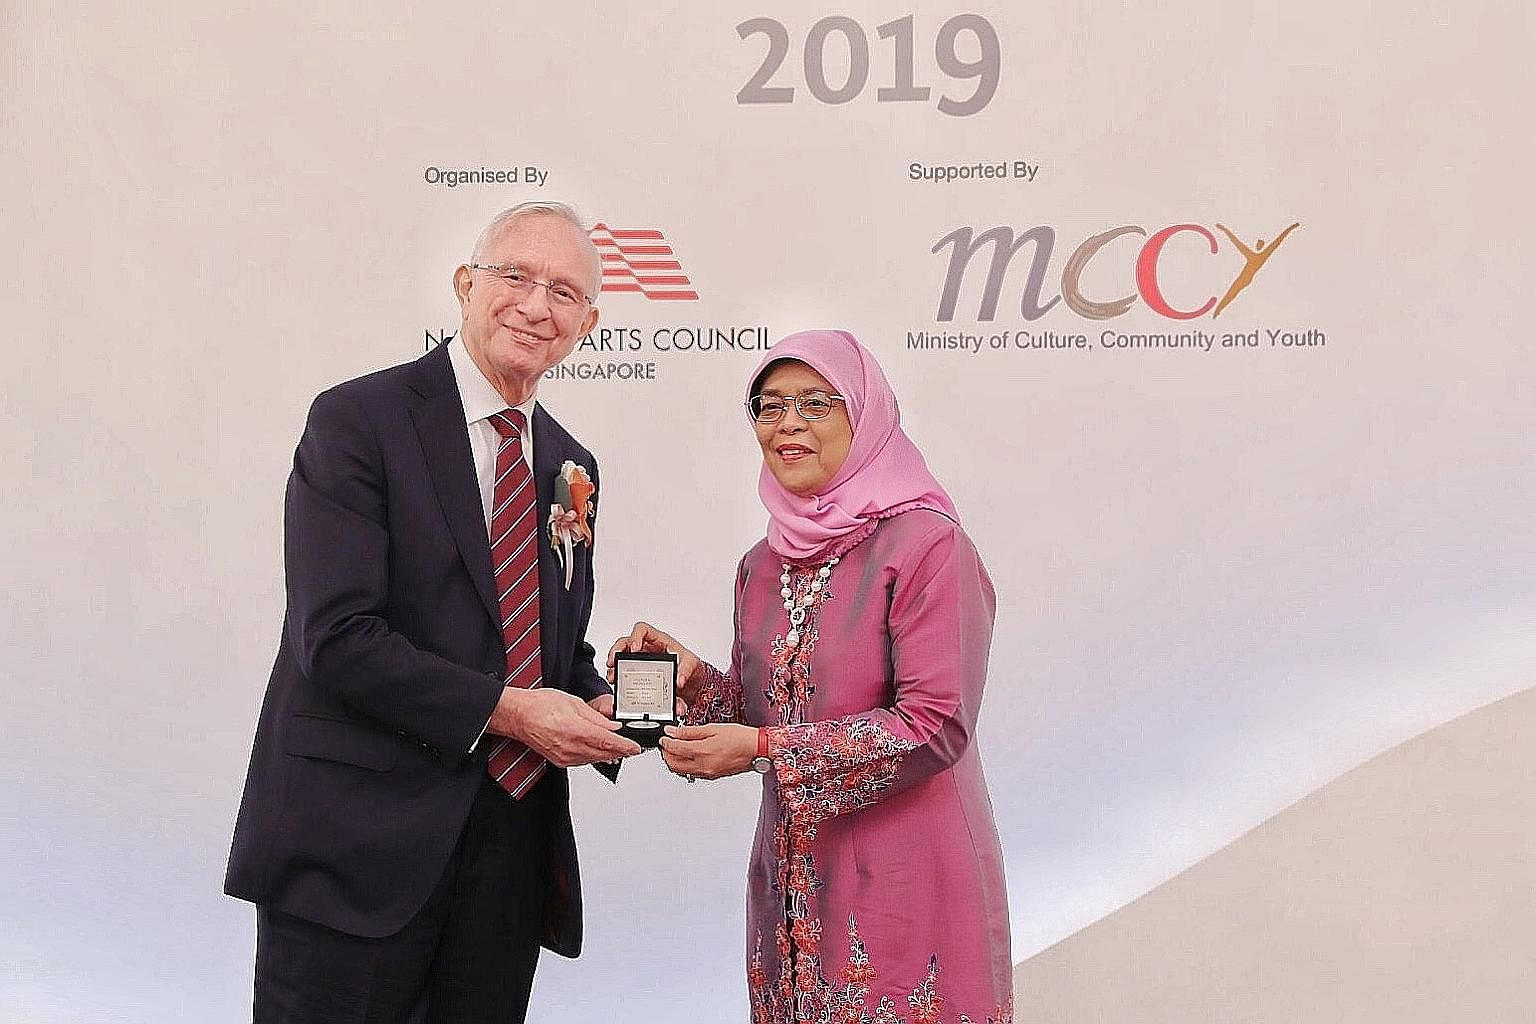 Composer Eric James Watson receiving the Cultural Medallion from President Halimah Yacob at the Istana yesterday. Mr Watson is the 126th artist to be given the Cultural Medallion, which comes with $80,000 from the Cultural Medallion Fund that recipie